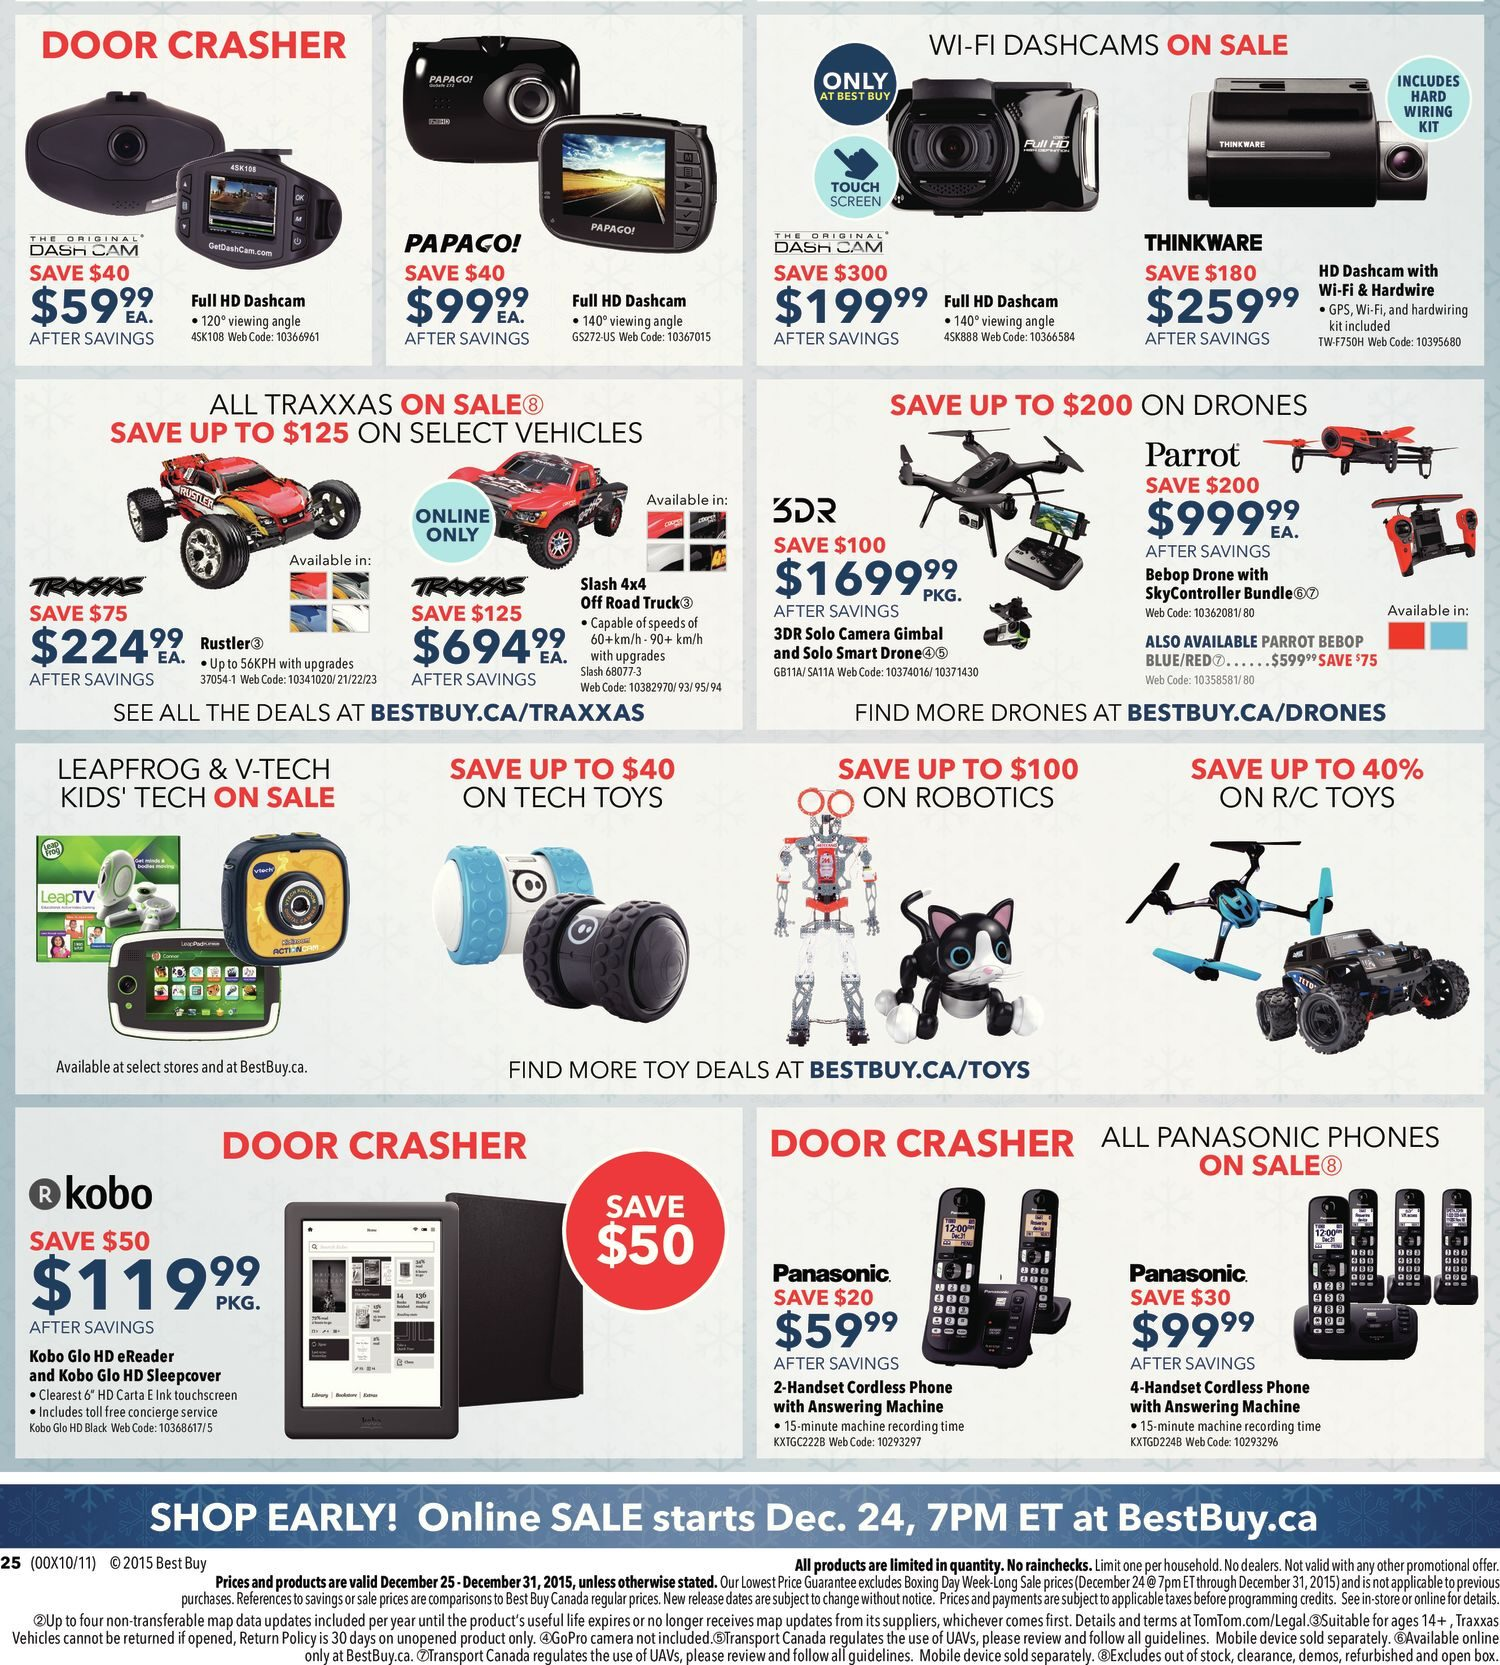 Best Buy Weekly Flyer - Weekly - Boxing Week-Long Sale - Dec